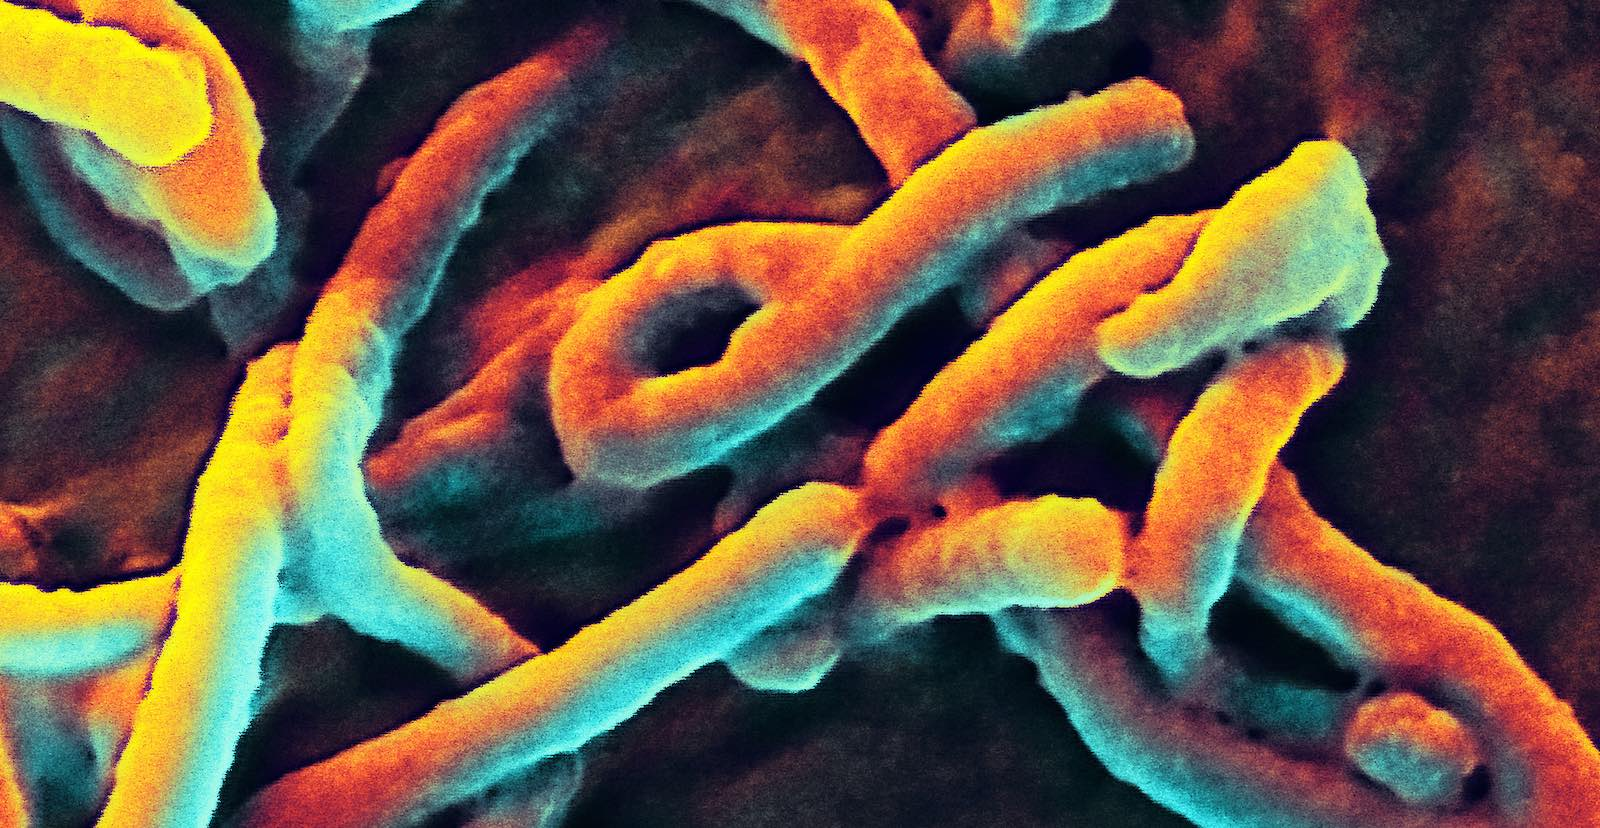 Scanning of an electron micrograph of Ebola virus budding (Photo: NIAID/Flickr)